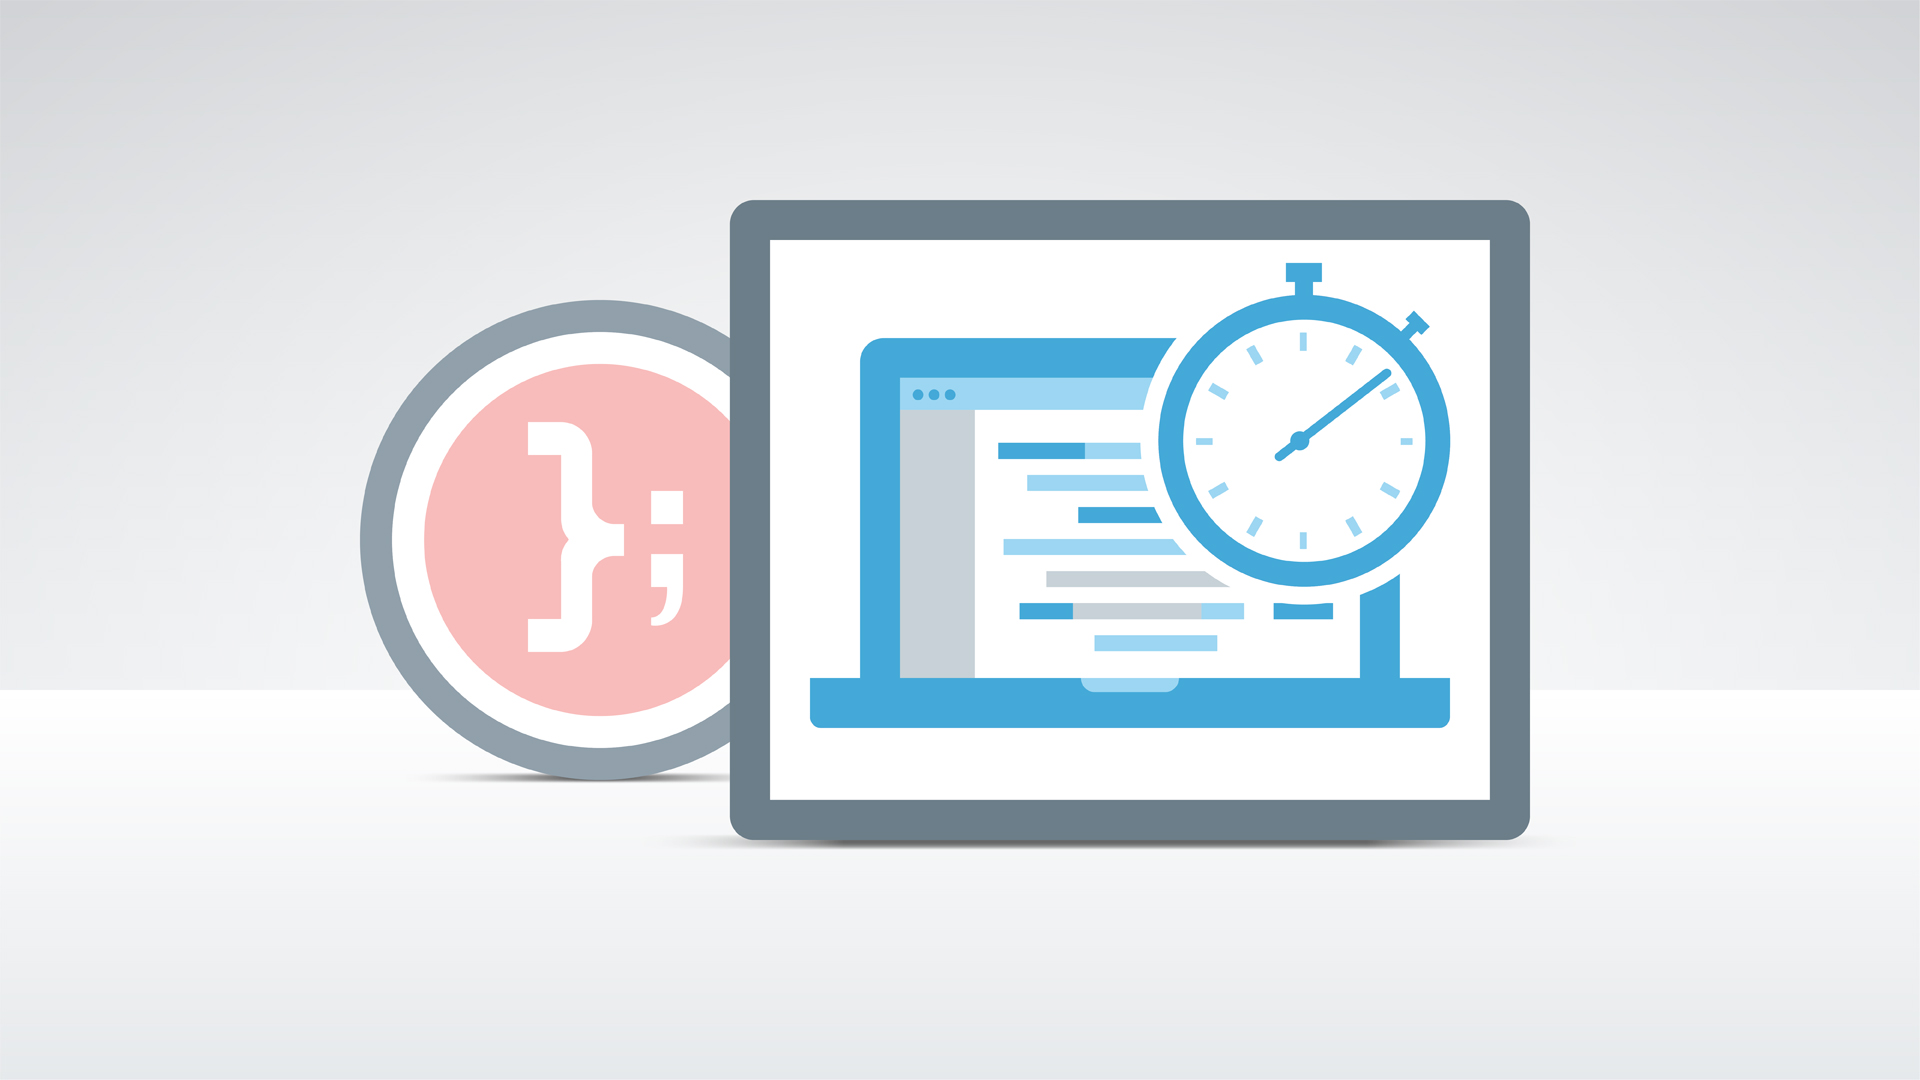 The course overview: Mastering Express Web Application Development